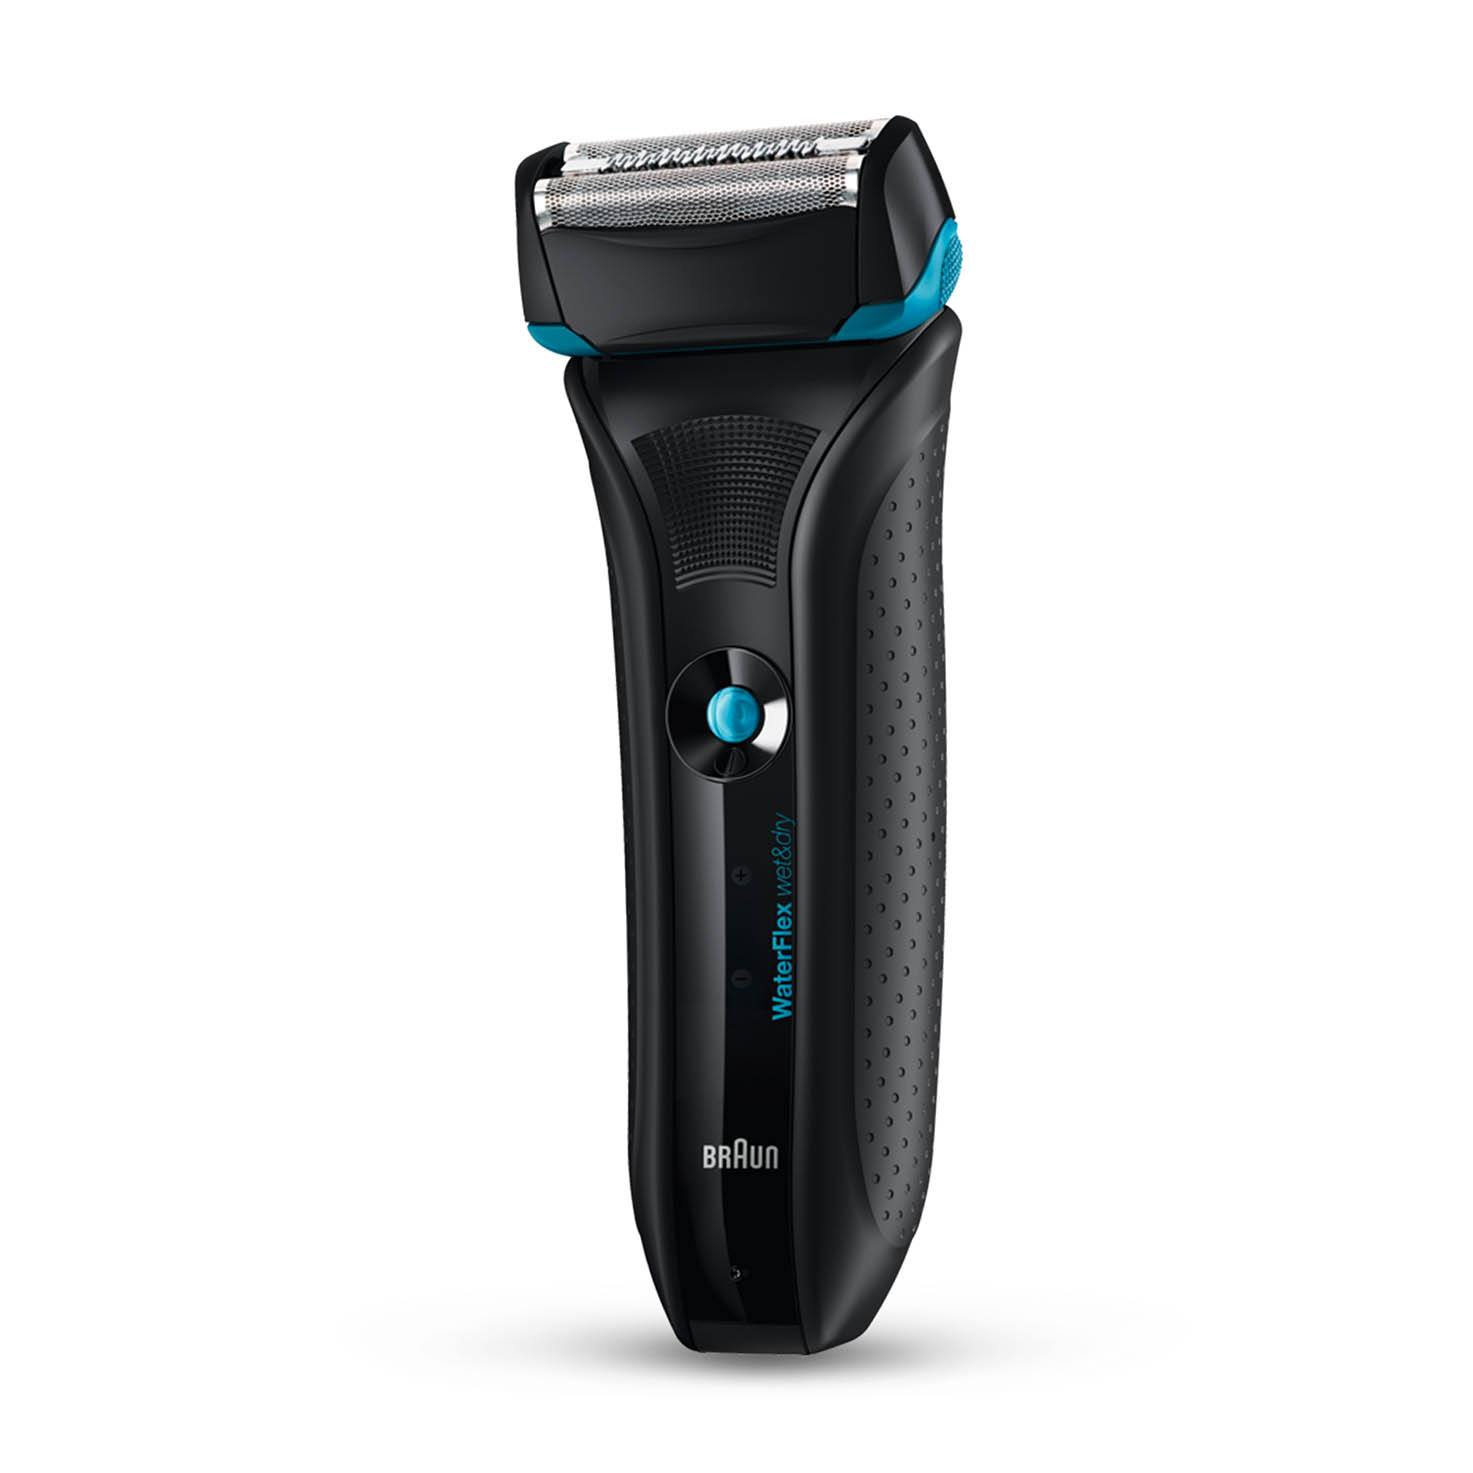 Braun WaterFlex WF2s black Wet & Dry shaver with swivel head